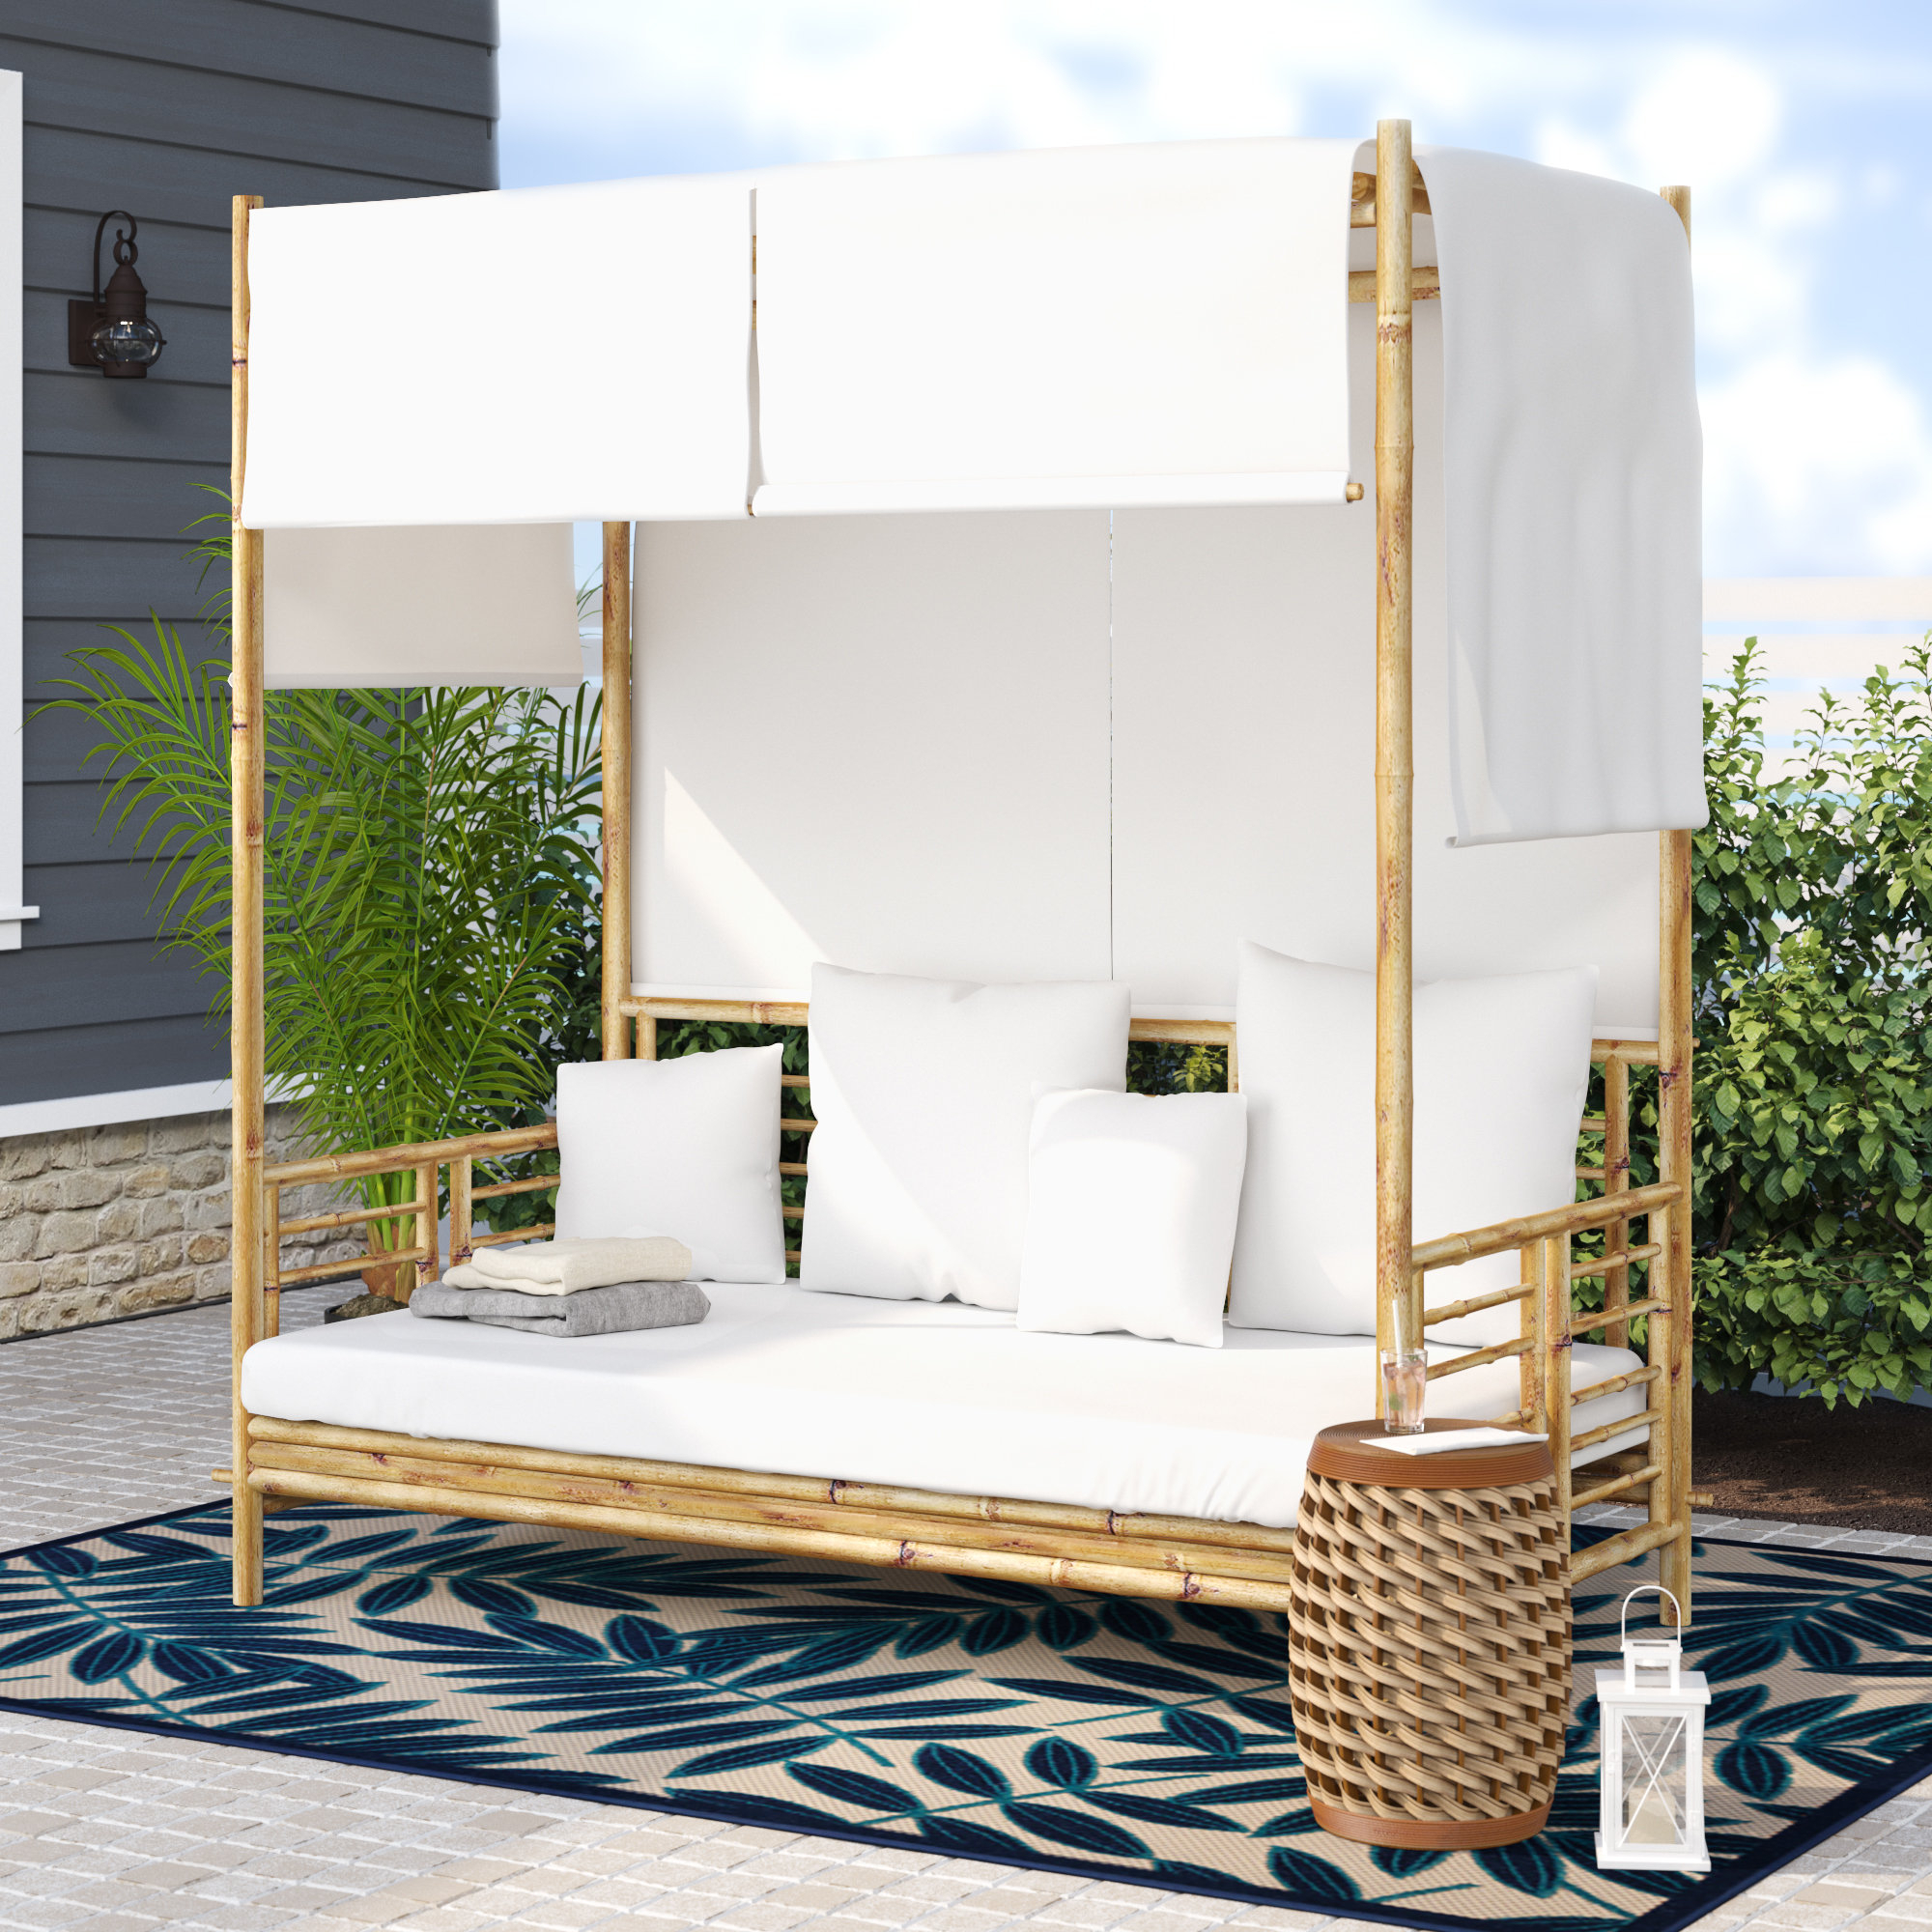 Grosvenor Bamboo Patio Daybeds With Cushions With Regard To Most Current Bamboo Daybed With Canopy – Robotena (View 8 of 20)